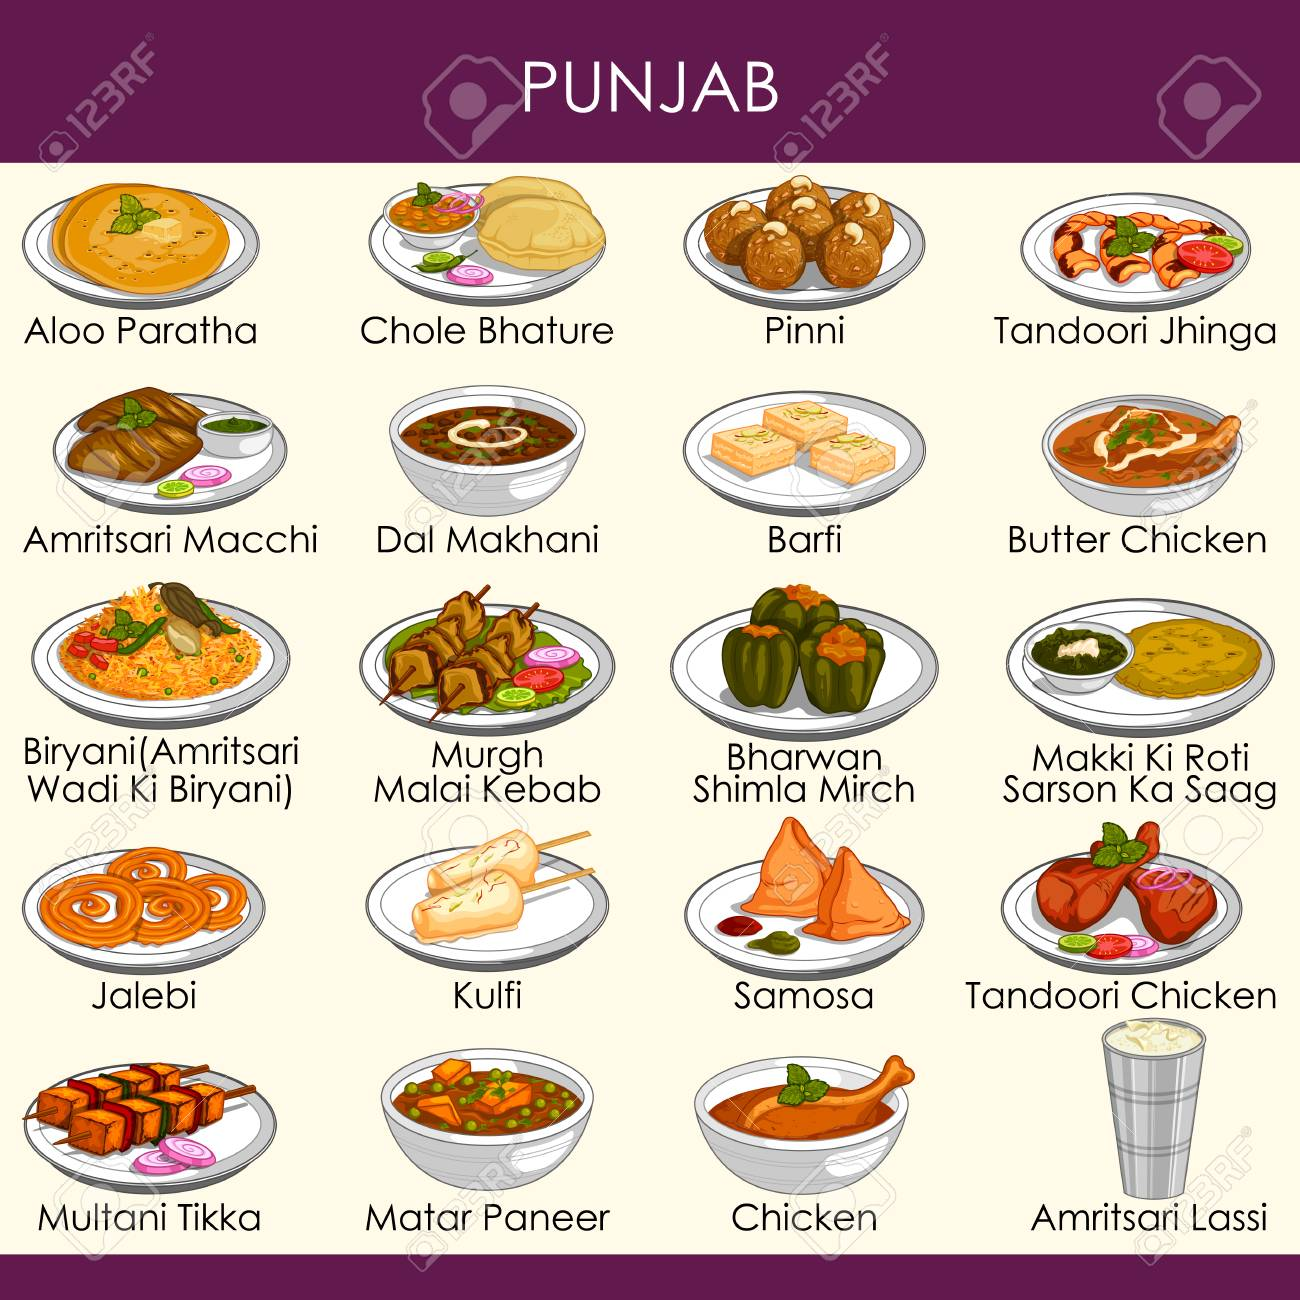 easy to edit vector illustration of delicious traditional food of Punjab India - 125730734